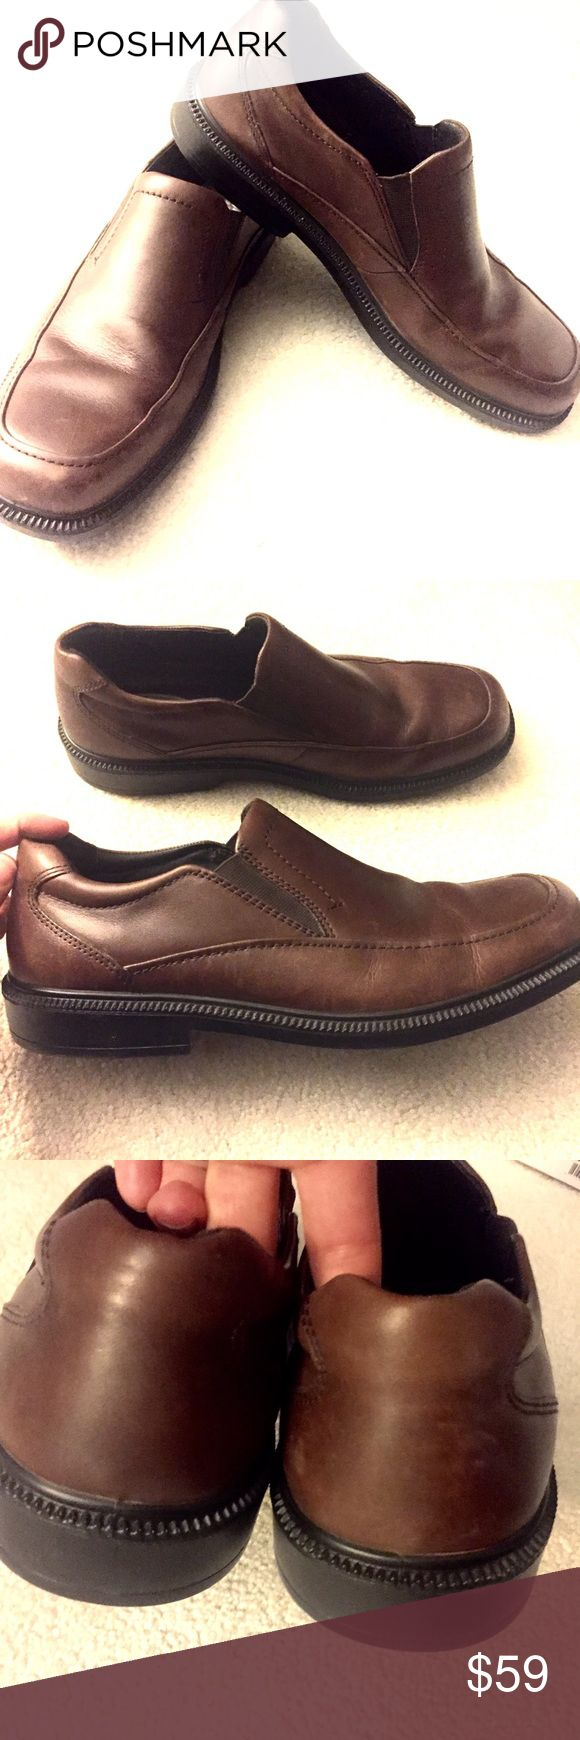 Men's Brown Hush Puppie Shoes size 11 Men's Brown Hush Puppie Shoes size 11M US. One inch heel. Comfortable sole. Very light scuffing on toes as shown. Worn once. Excellent condition. Hush Puppies Shoes Loafers & Slip-Ons